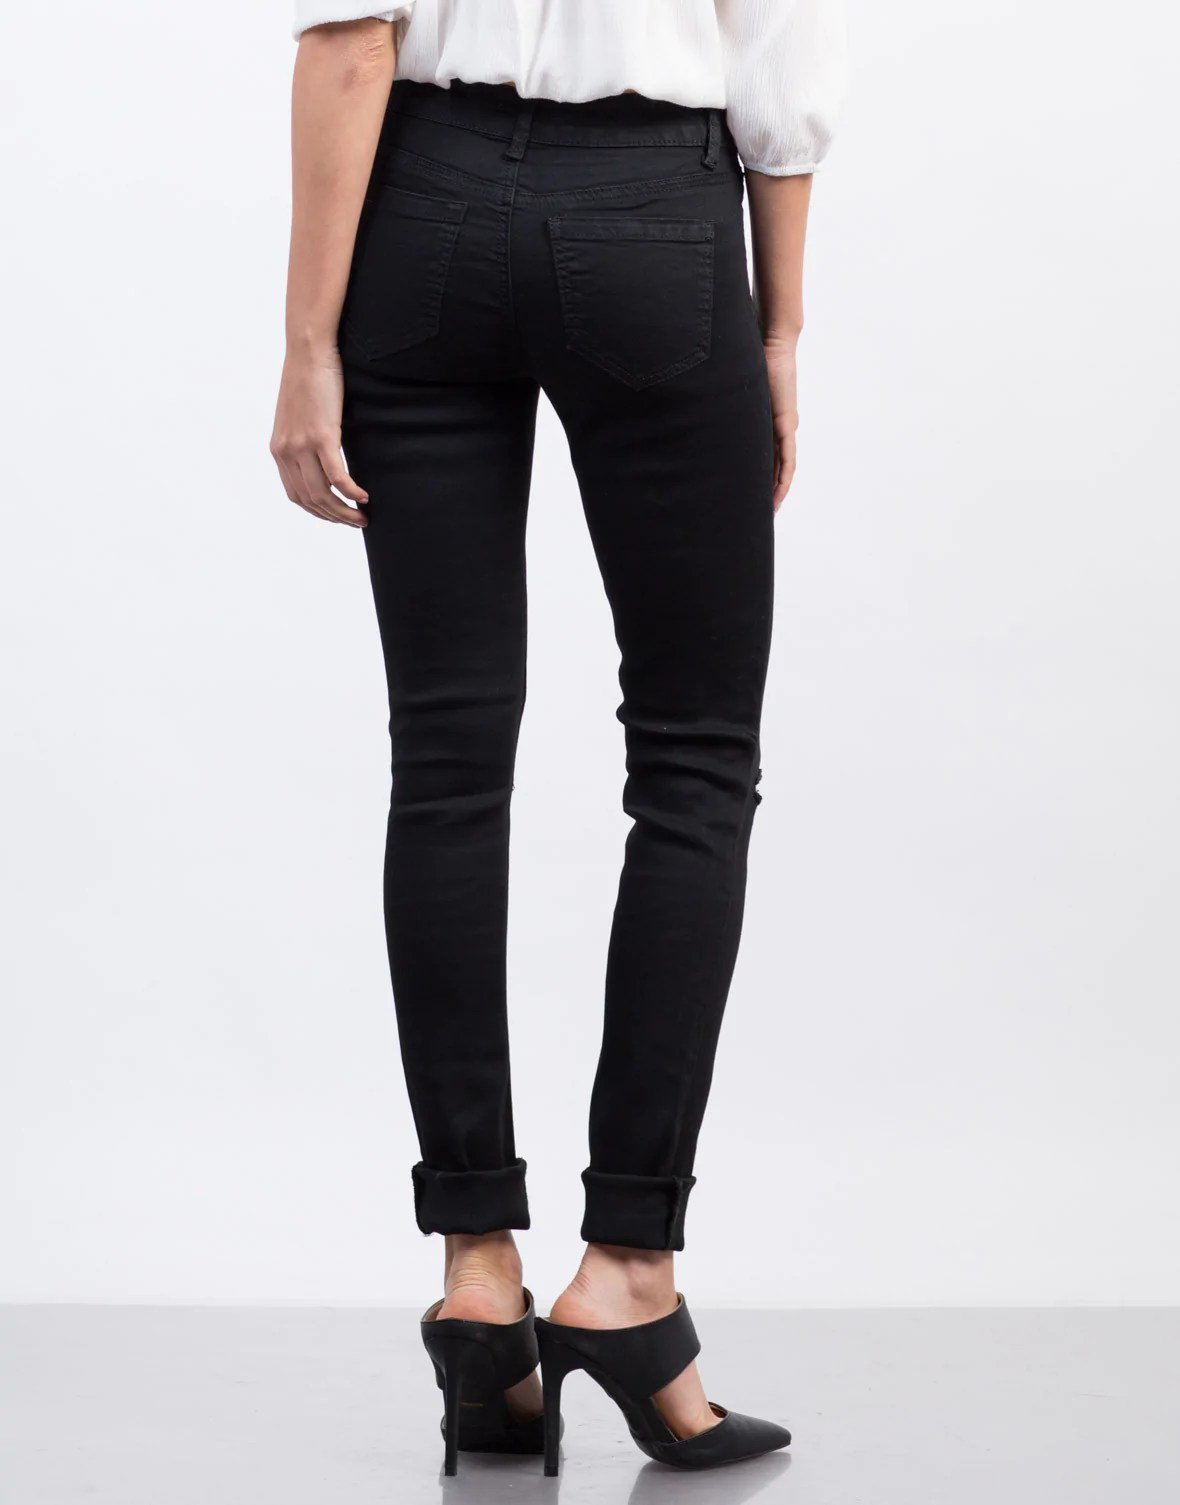 Ripped High Waisted Skinny Jeans - Black Destroyed Denim - White Distressed Skinnies – 2020AVE